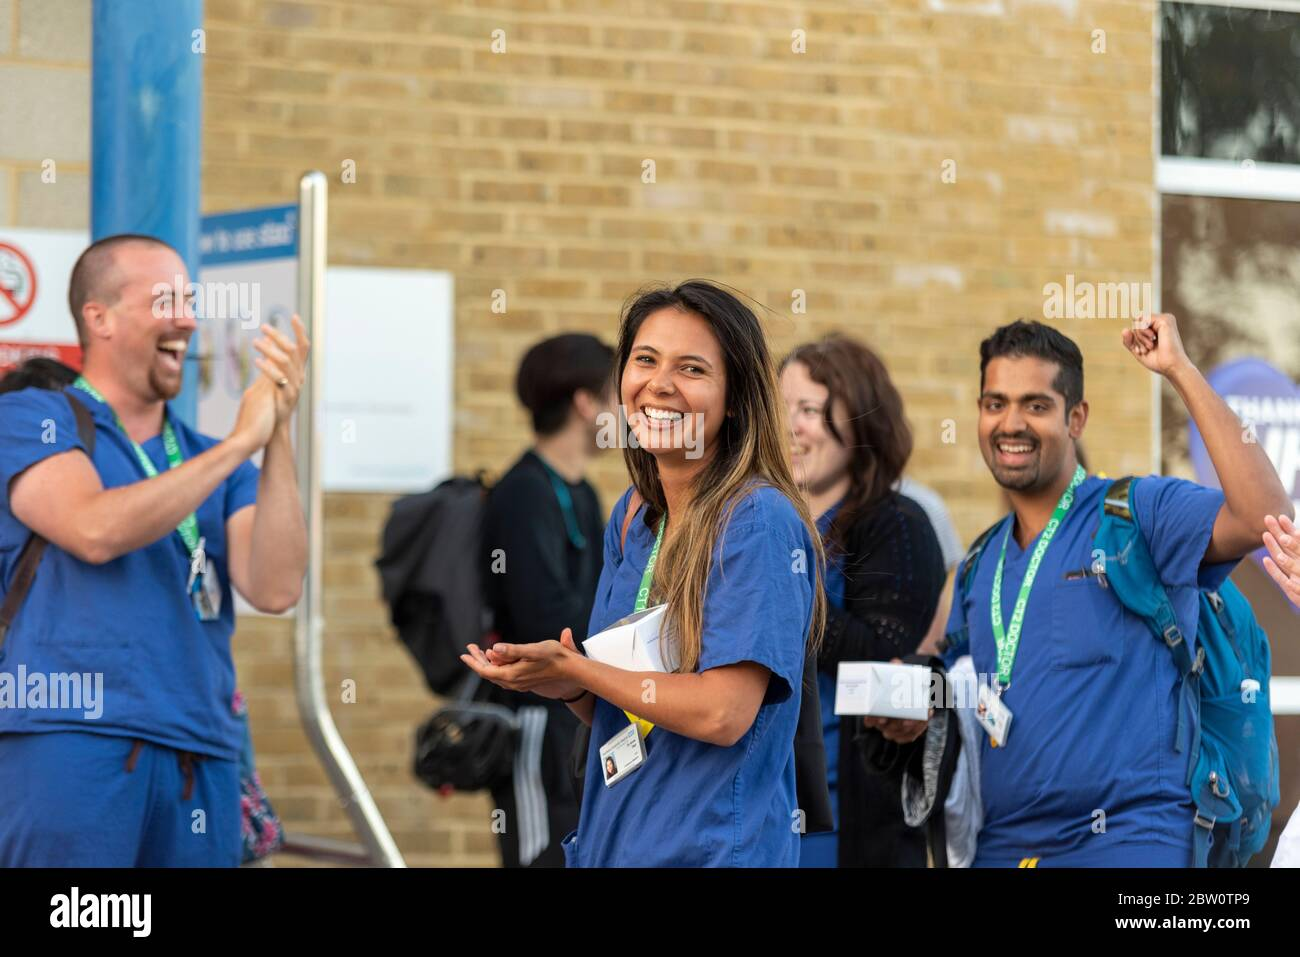 final-clap-for-carers-at-southend-university-hospital-essex-uk-at-8pm-on-thursday-evening-dr-anne-tear-female-doctor-in-scrubs-healthcare-staff-2BW0TP9.jpg